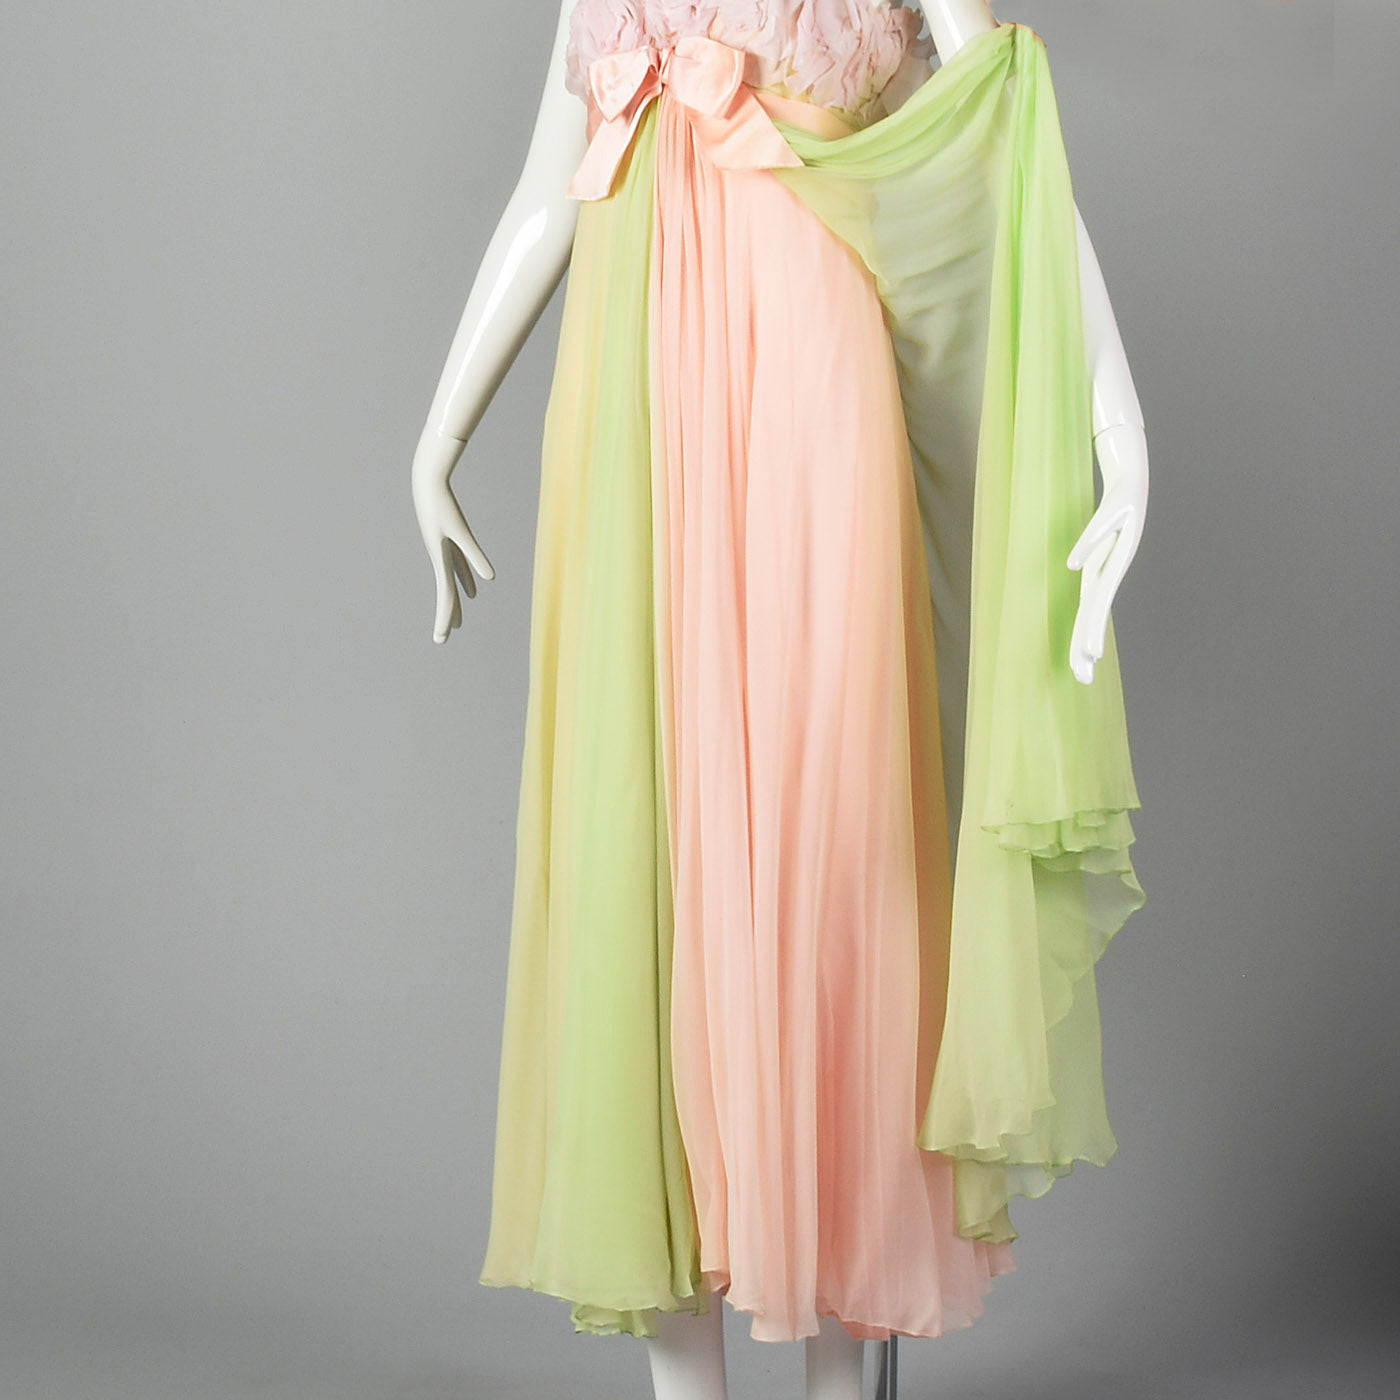 1960s Pastel Chiffon Evening Gown